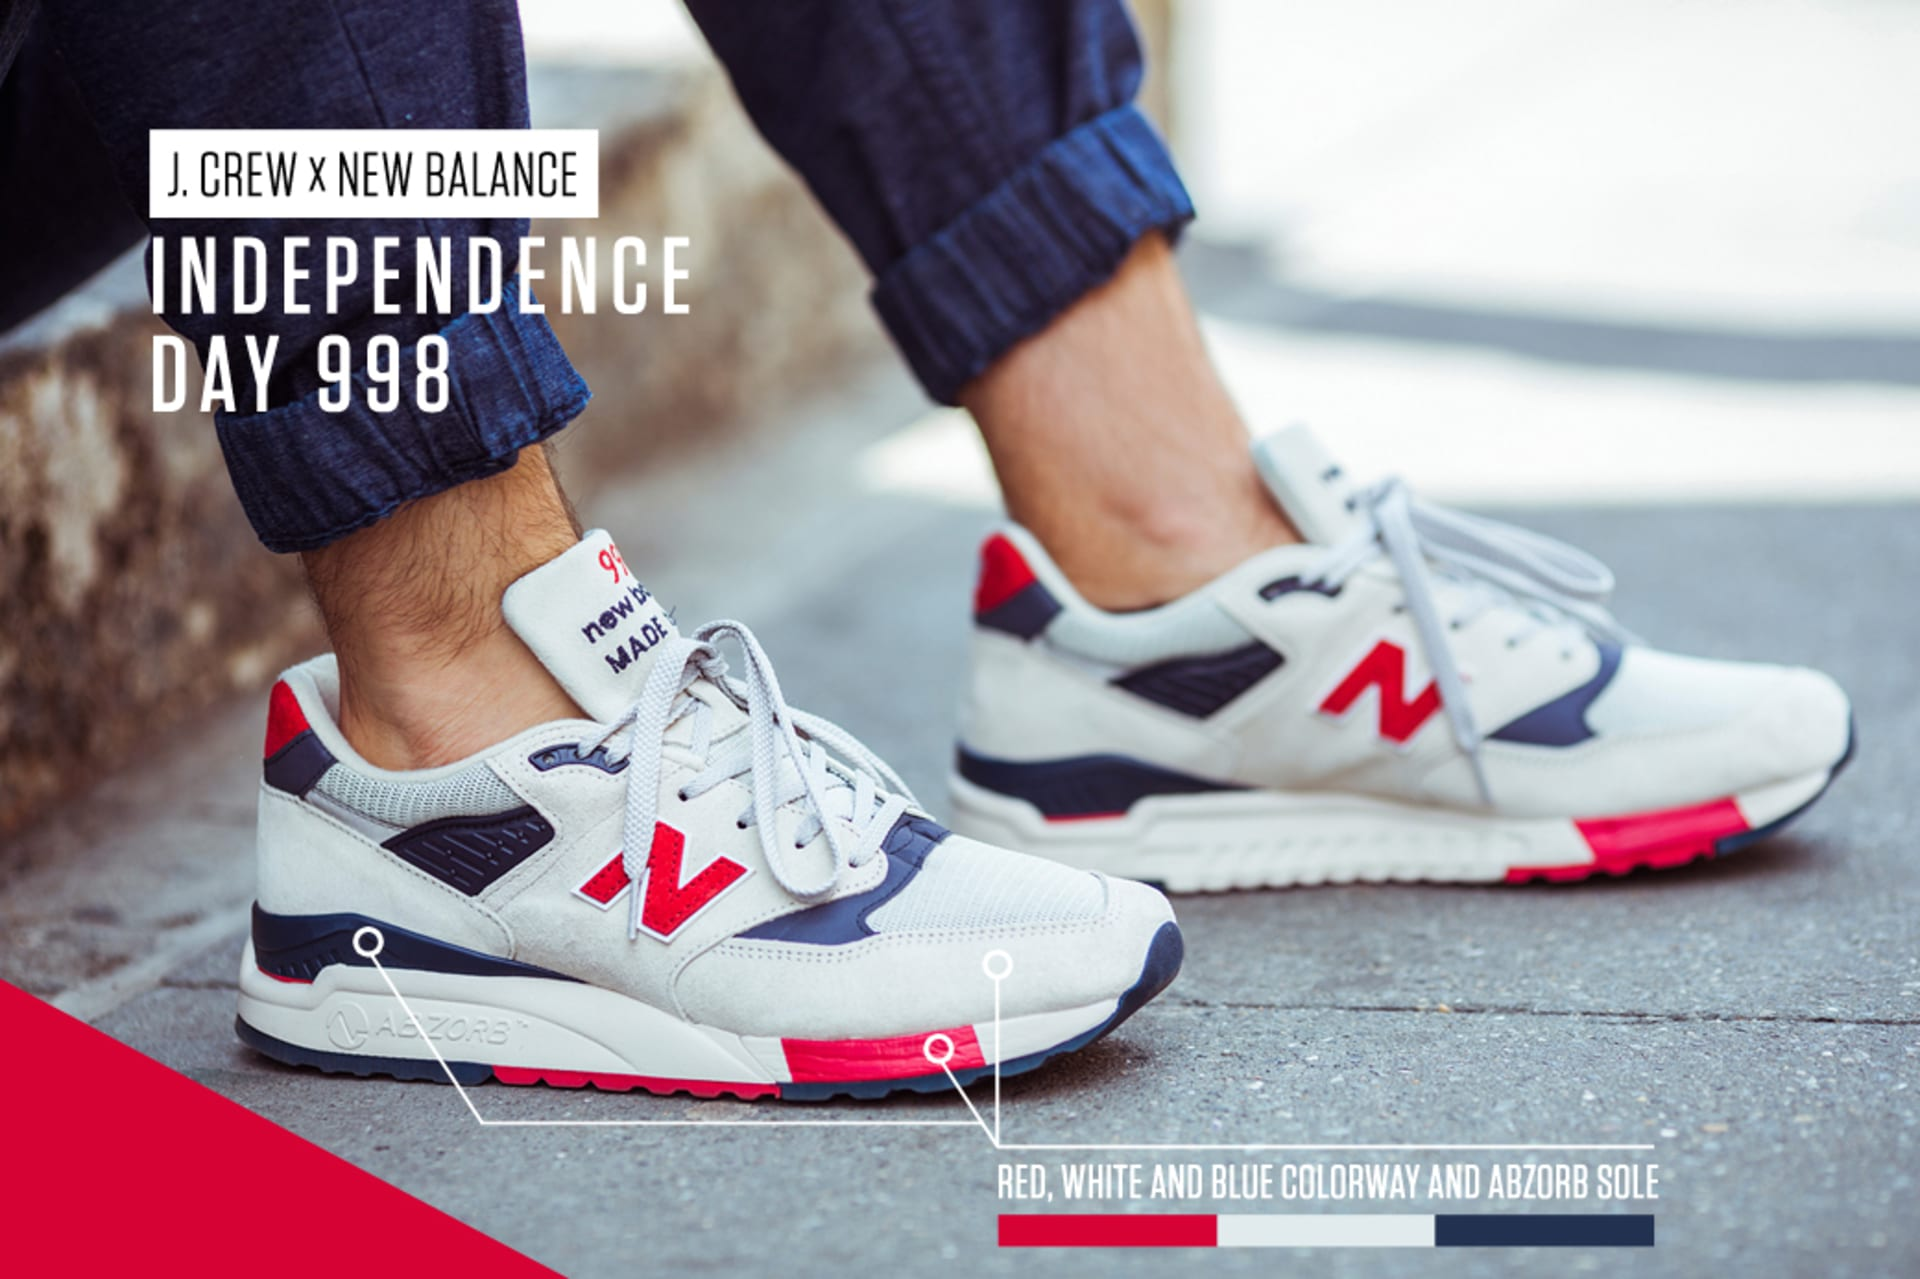 9c645d63c905e How J.Crew Got Sneakerheads to Care About Style | Complex